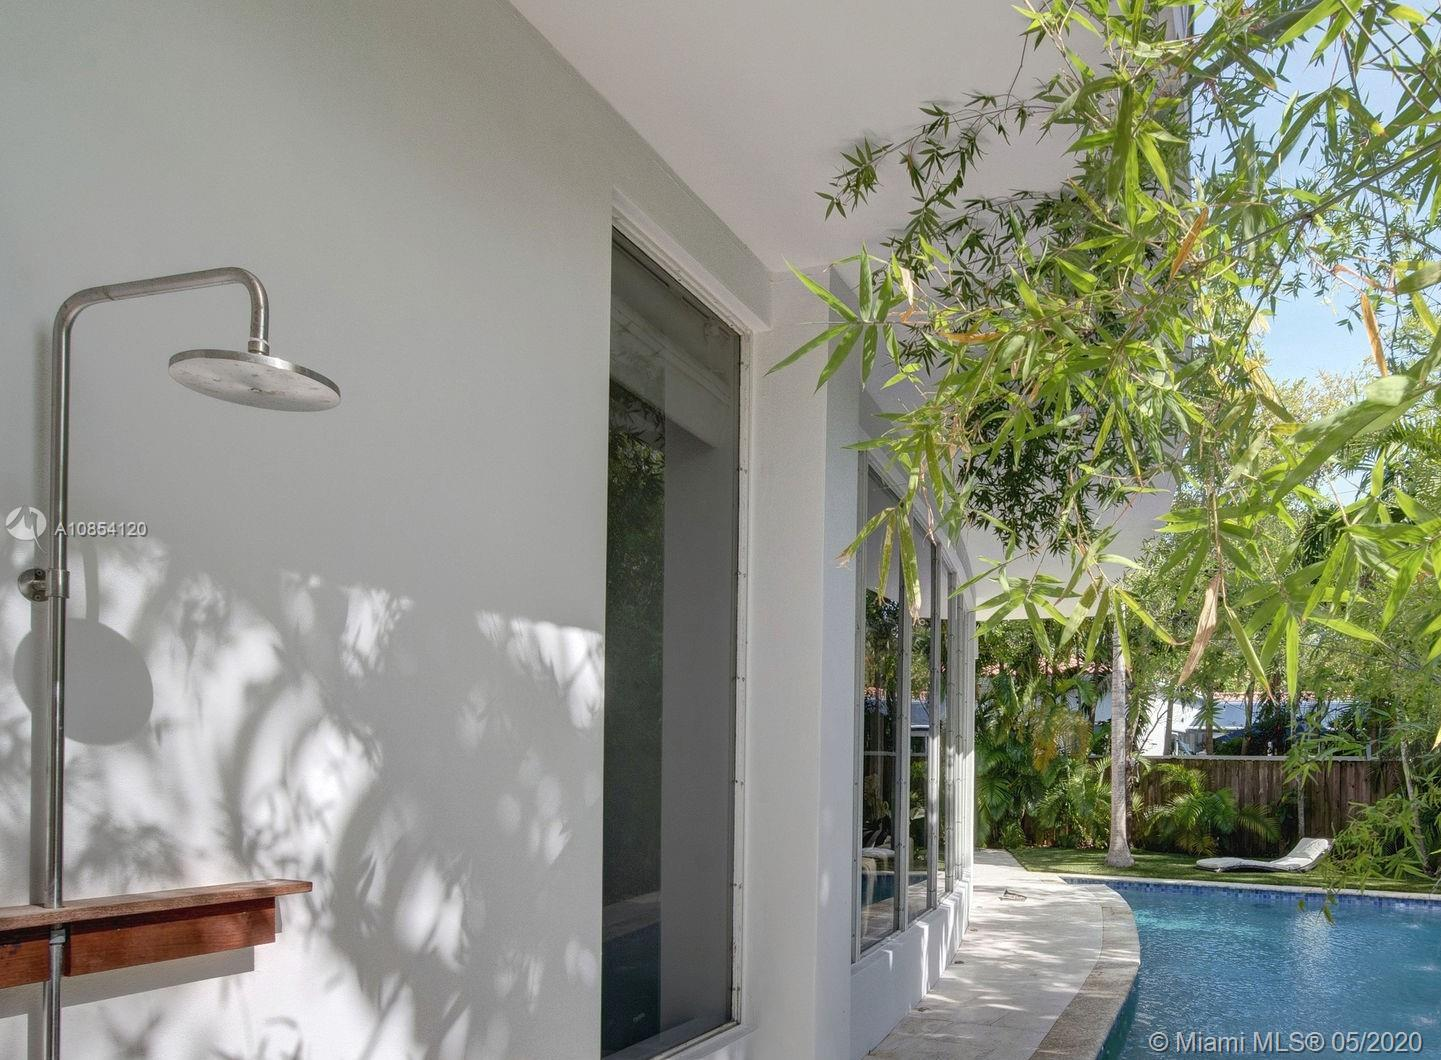 2280 Tequesta Ln, Coconut Grove, Florida 33133, 3 Bedrooms Bedrooms, ,4 BathroomsBathrooms,Residential,For Sale,2280 Tequesta Ln,A10854120